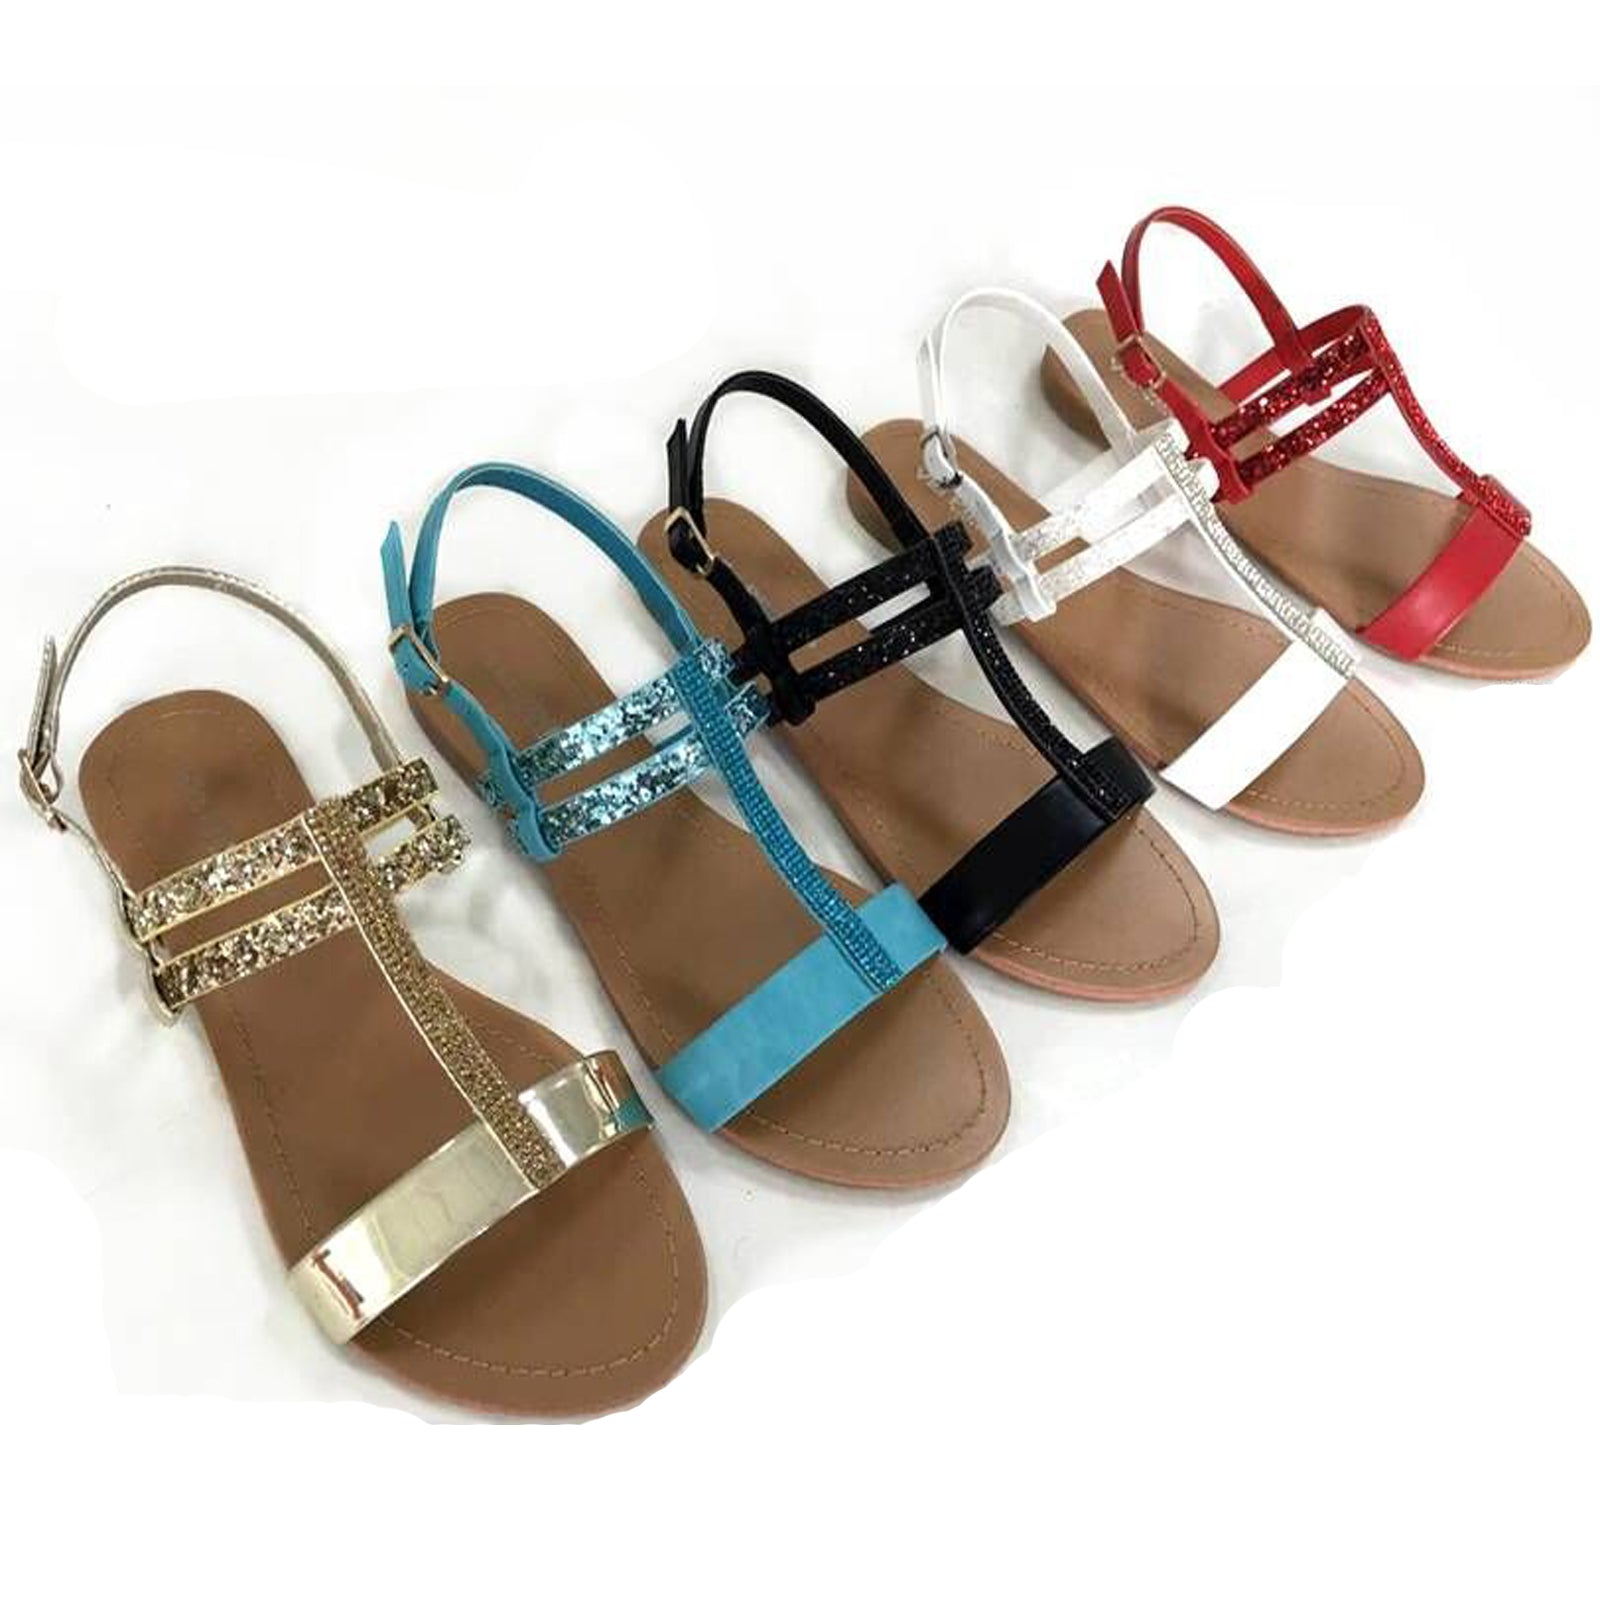 Wholesale Women's shoes glittered t strap SANDALS ncpi4